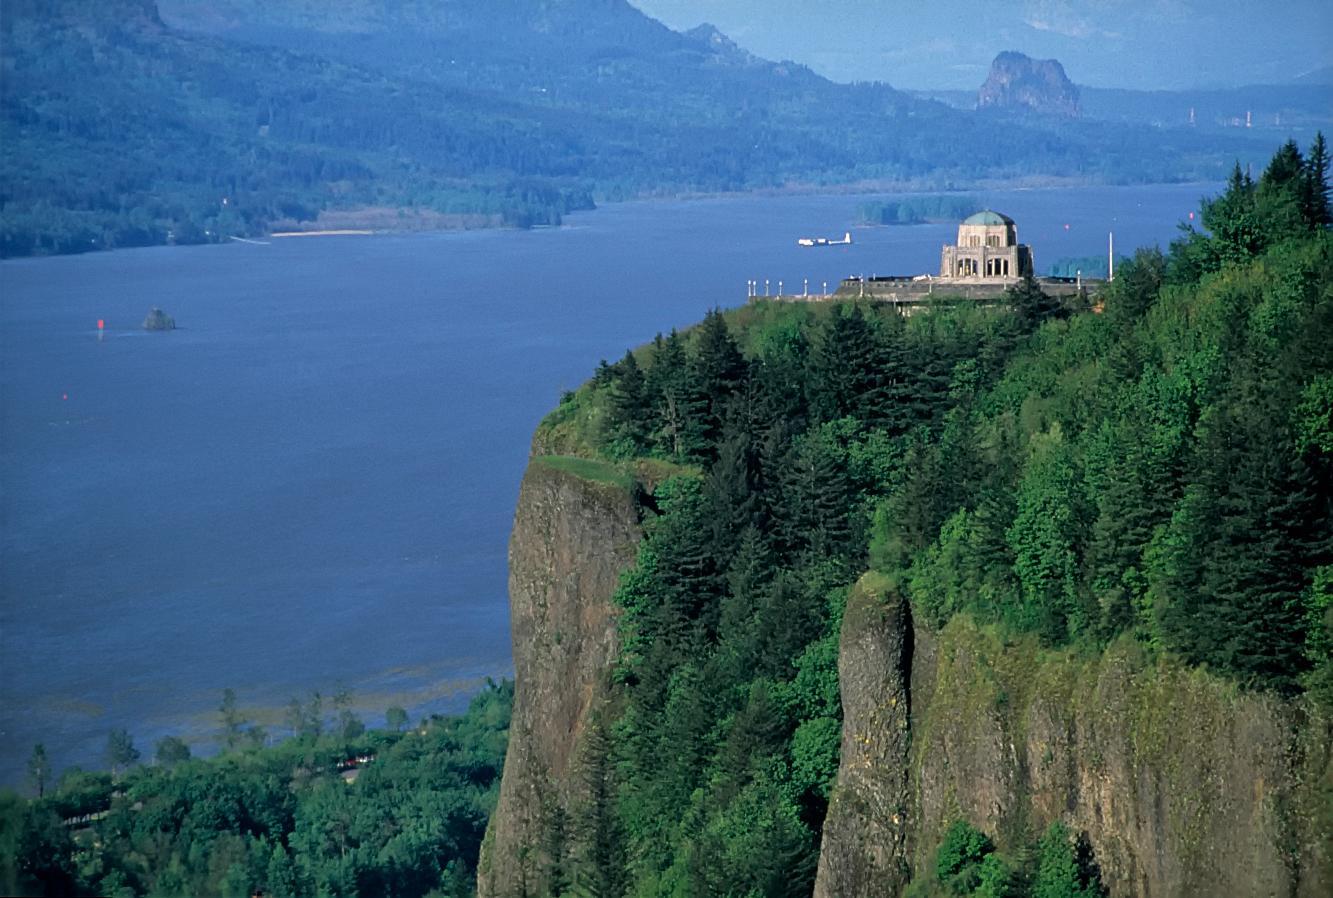 Vista House in the Columbia River Gorge (USDA Forest Service)